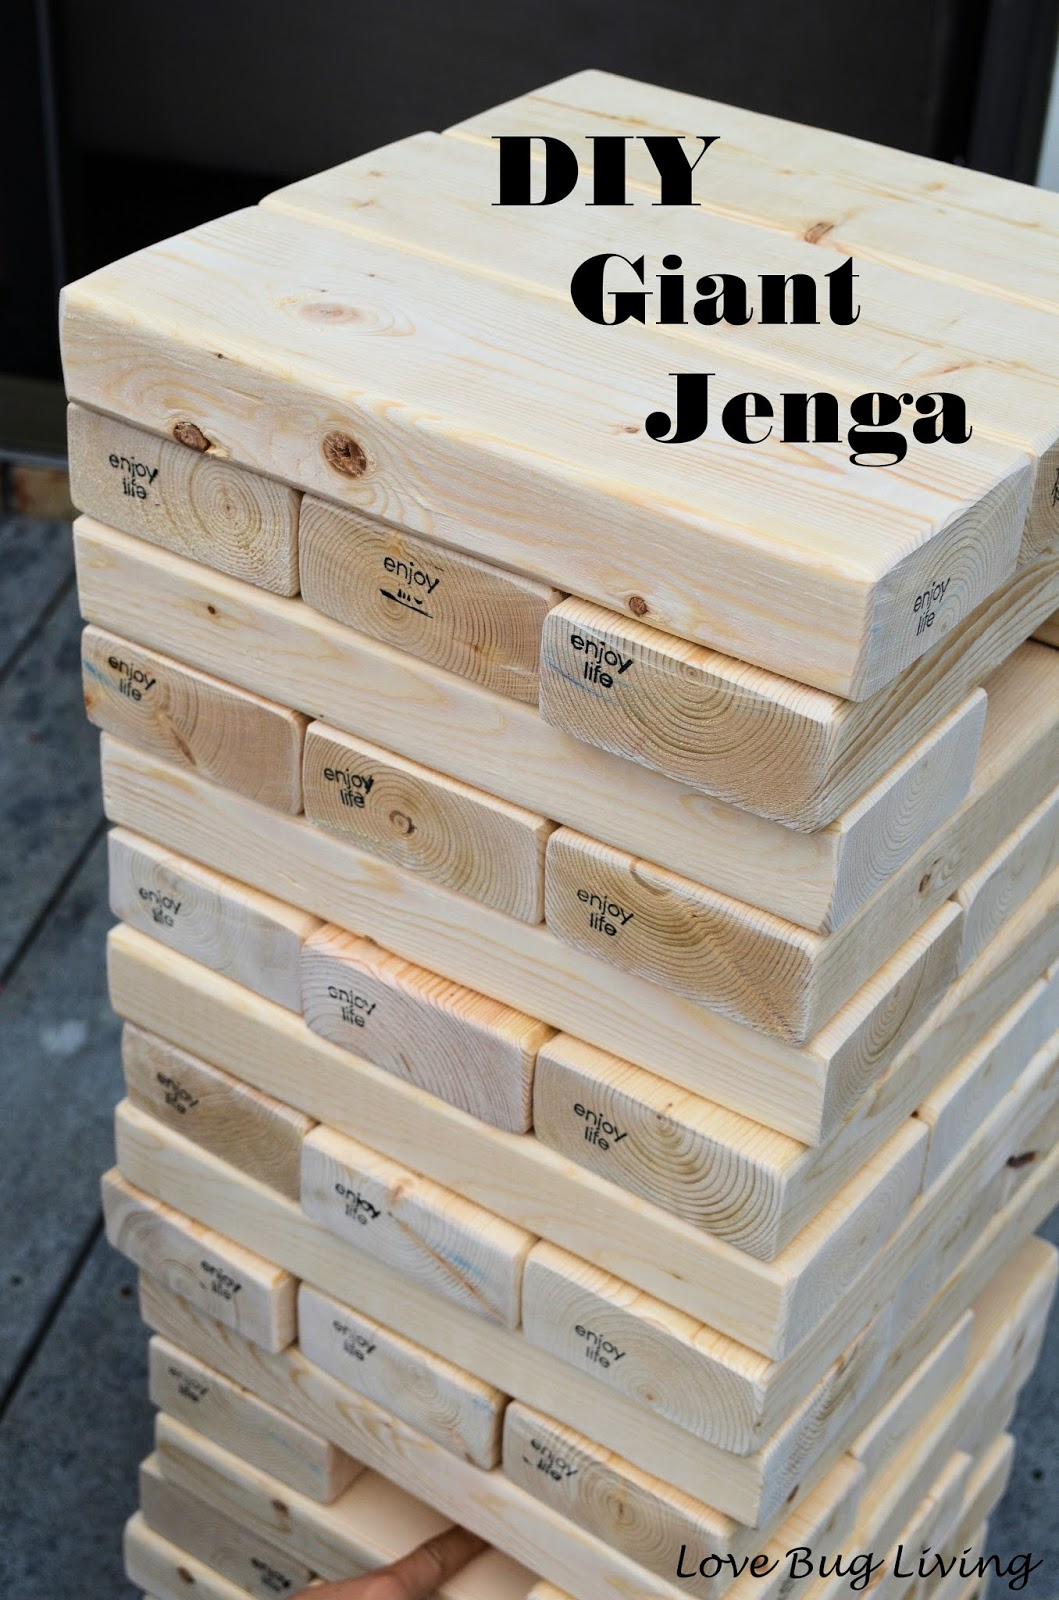 Love Bug Living Diy Giant Jenga Game